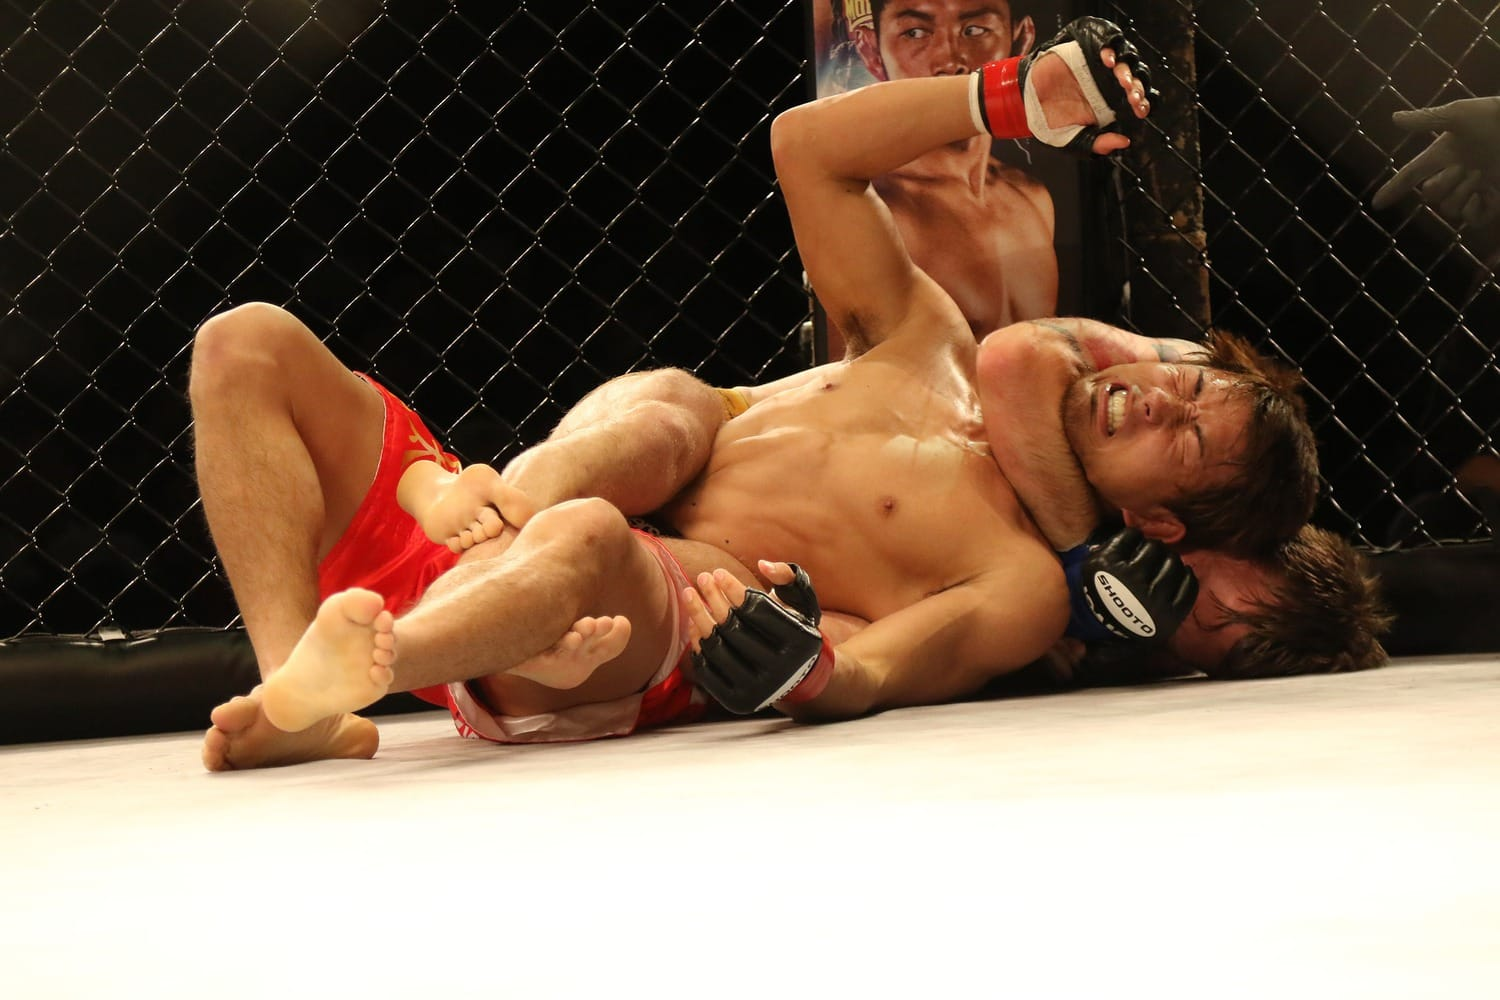 MMA Fighters in action